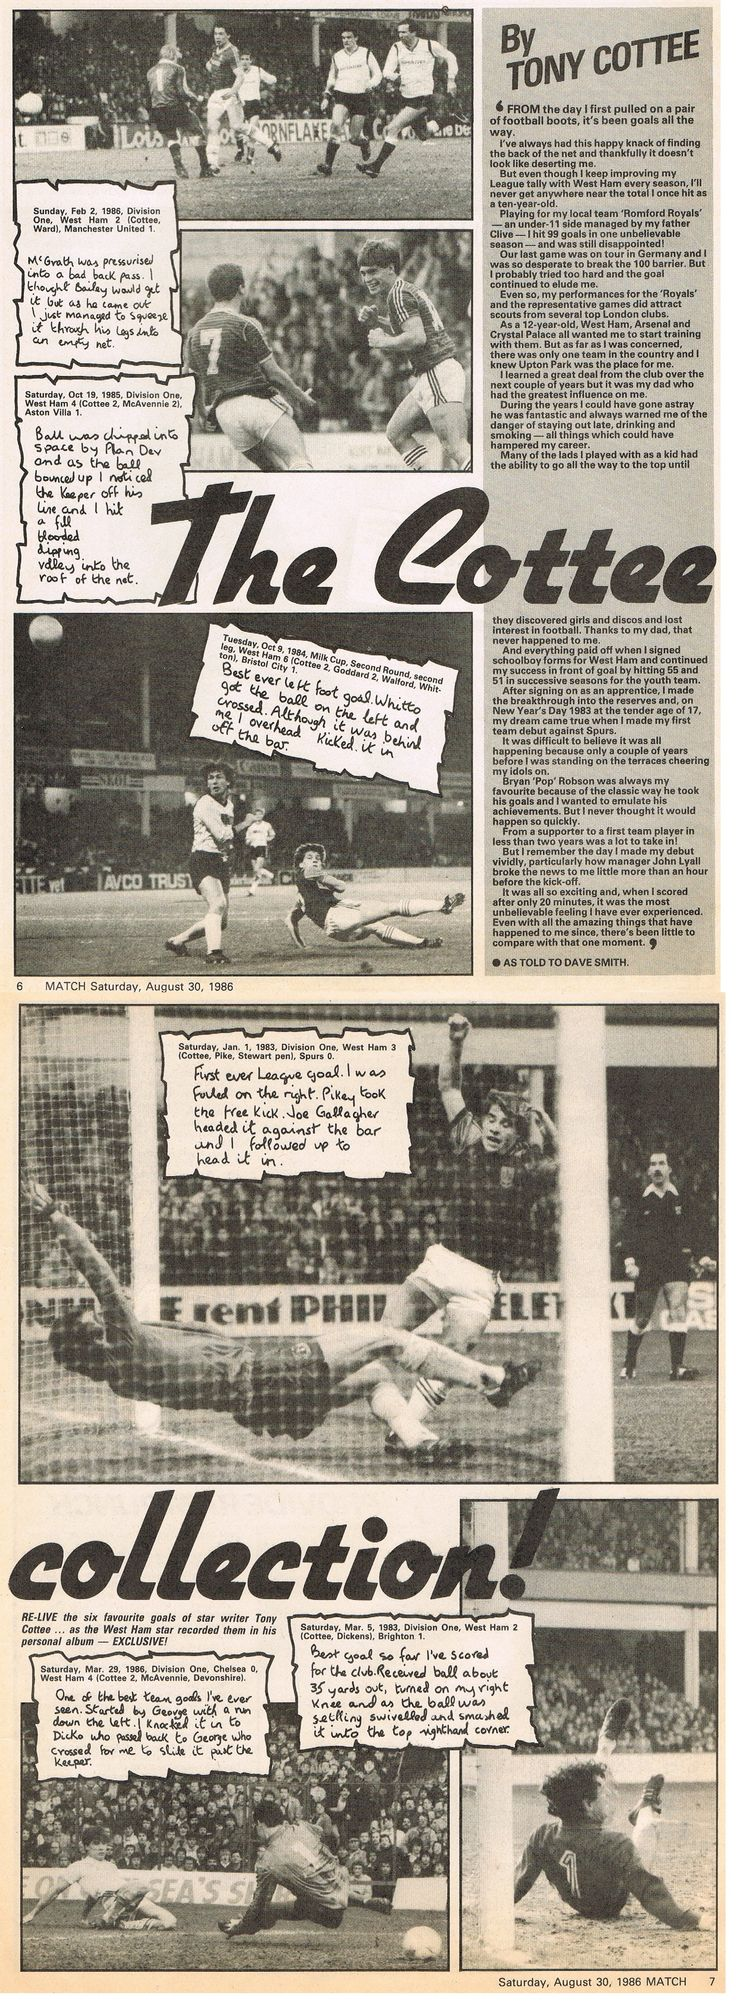 Here's a MATCH special from the 30th August 1986 on Tony Cottee. The beauty was I was at all these games and many more with my dad continually reminding me we were the same age..